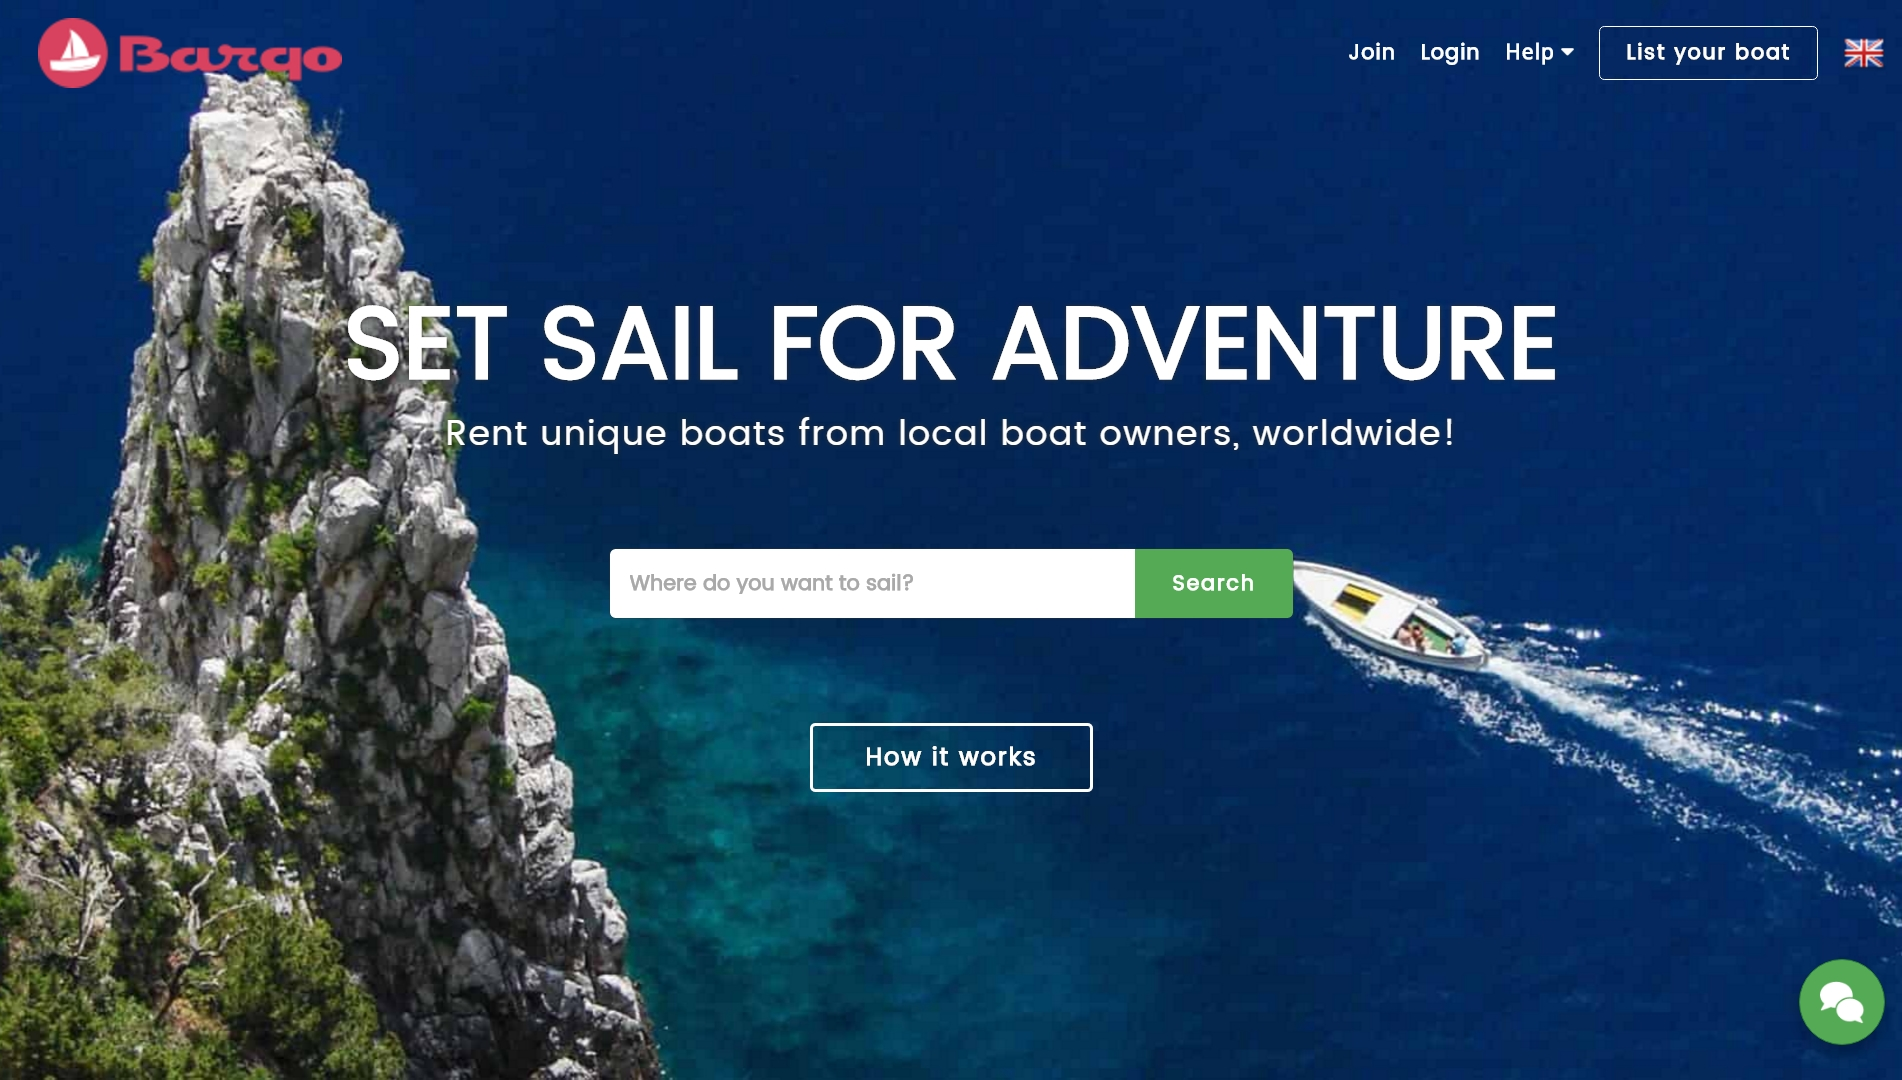 Can Barqo and Click & Bait become the Airbnb of boating?